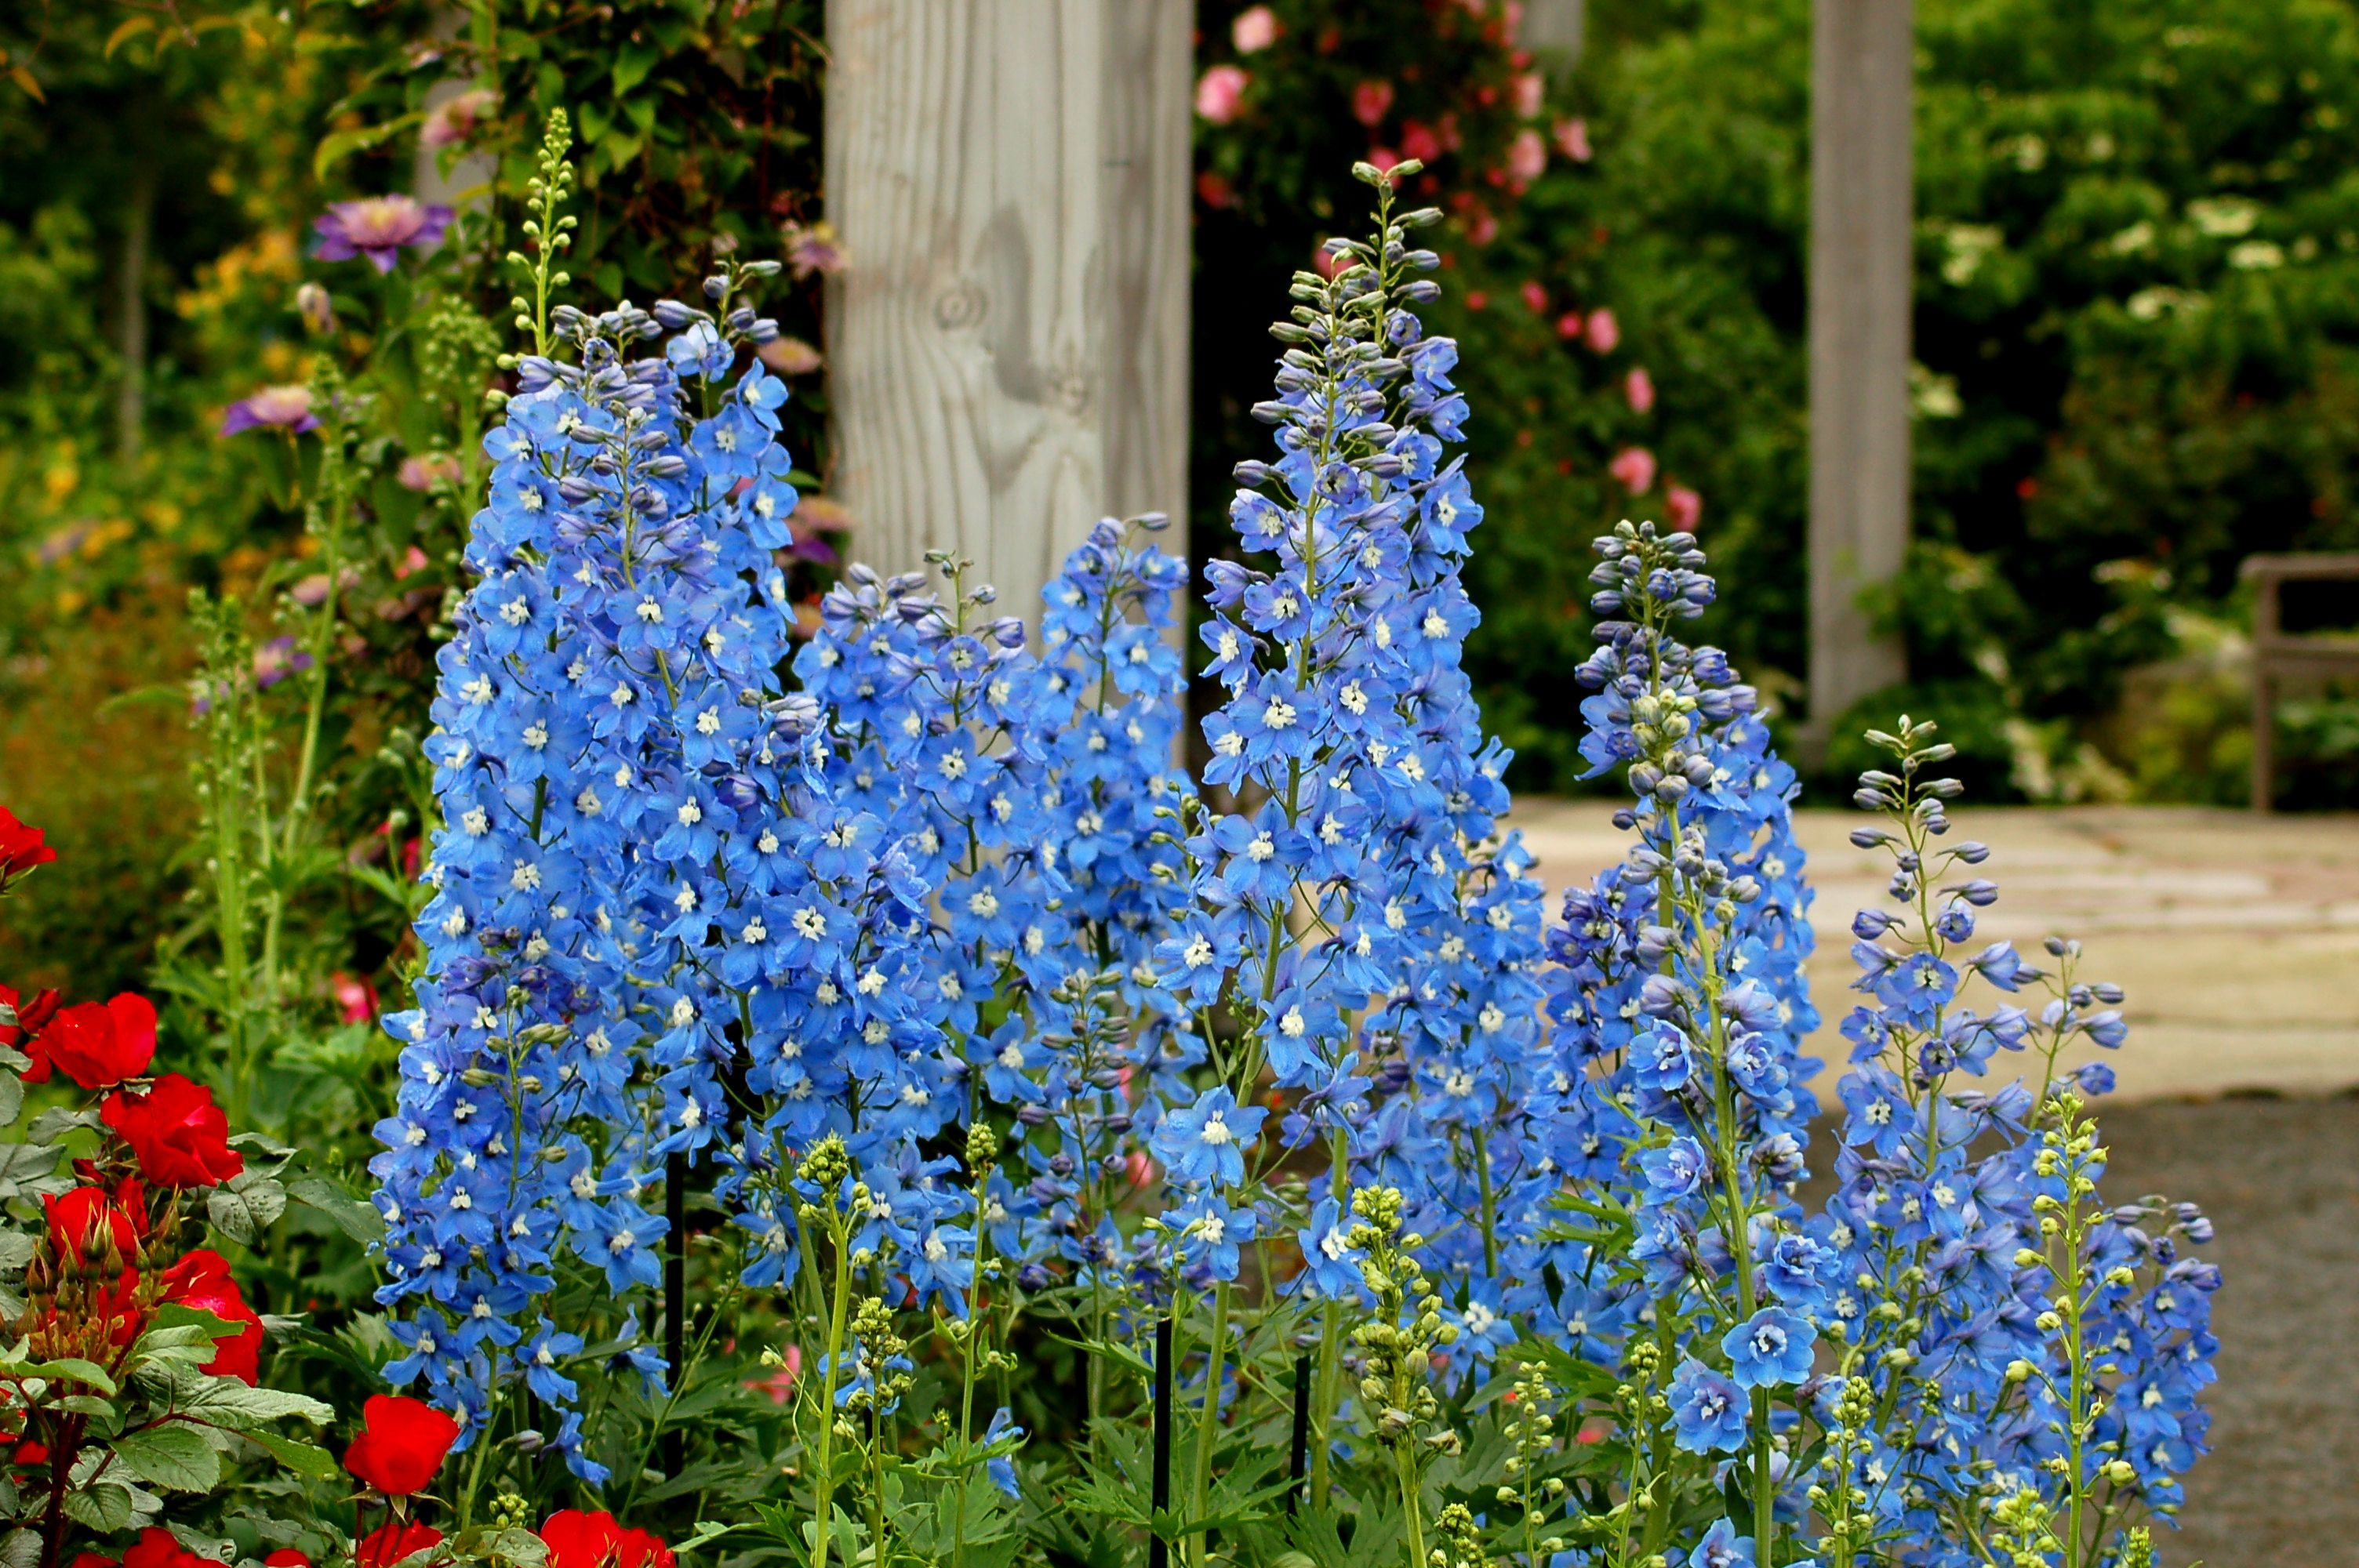 'Summer Skies' delphinium in bloom near a wooden fence.